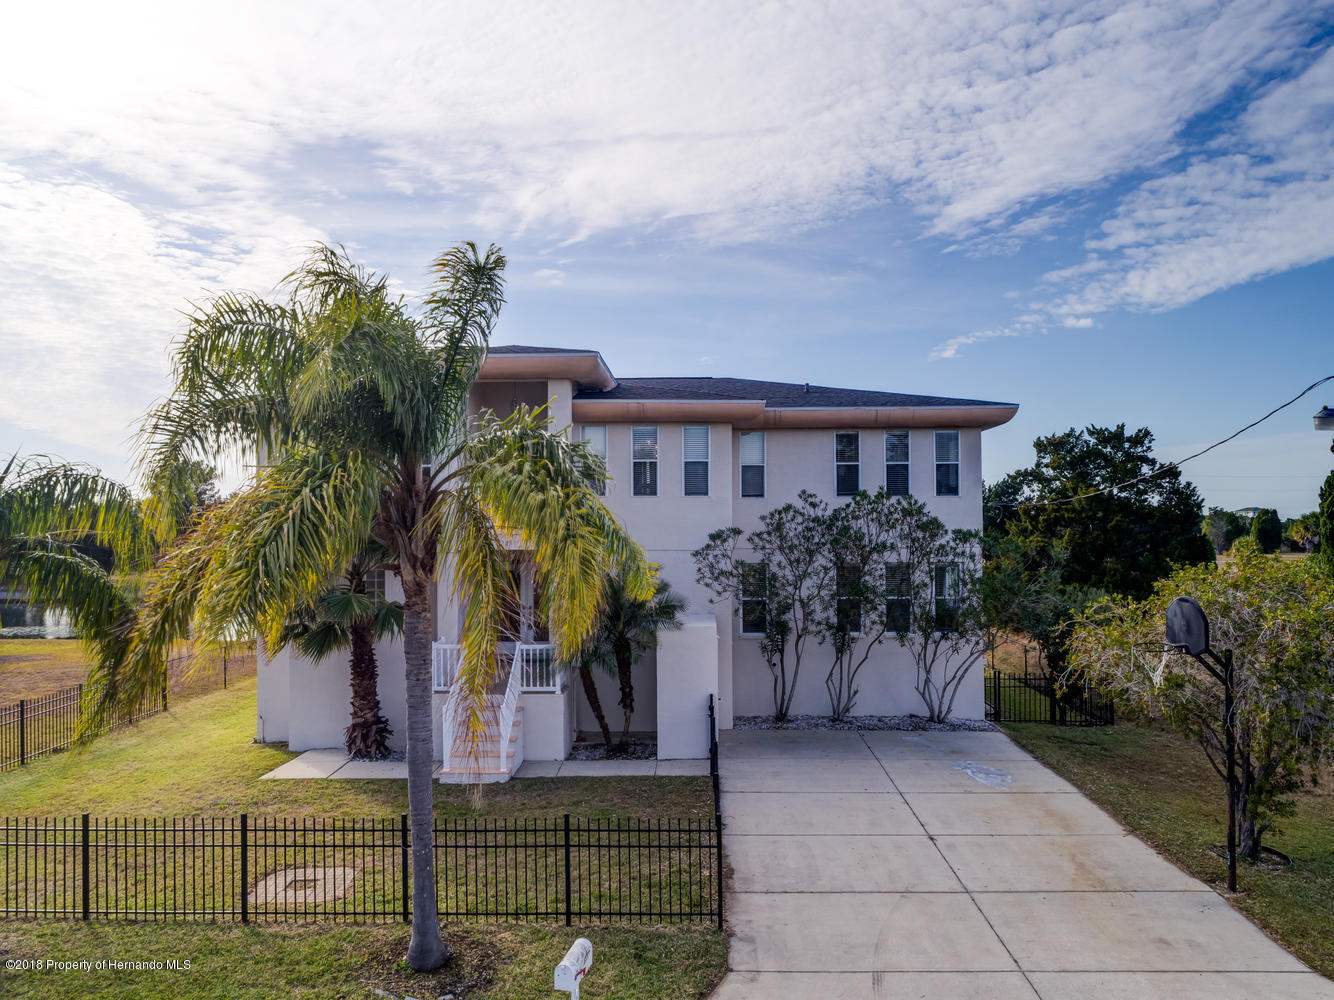 3223 Hibiscus Dr Hernando-large-002-12-F